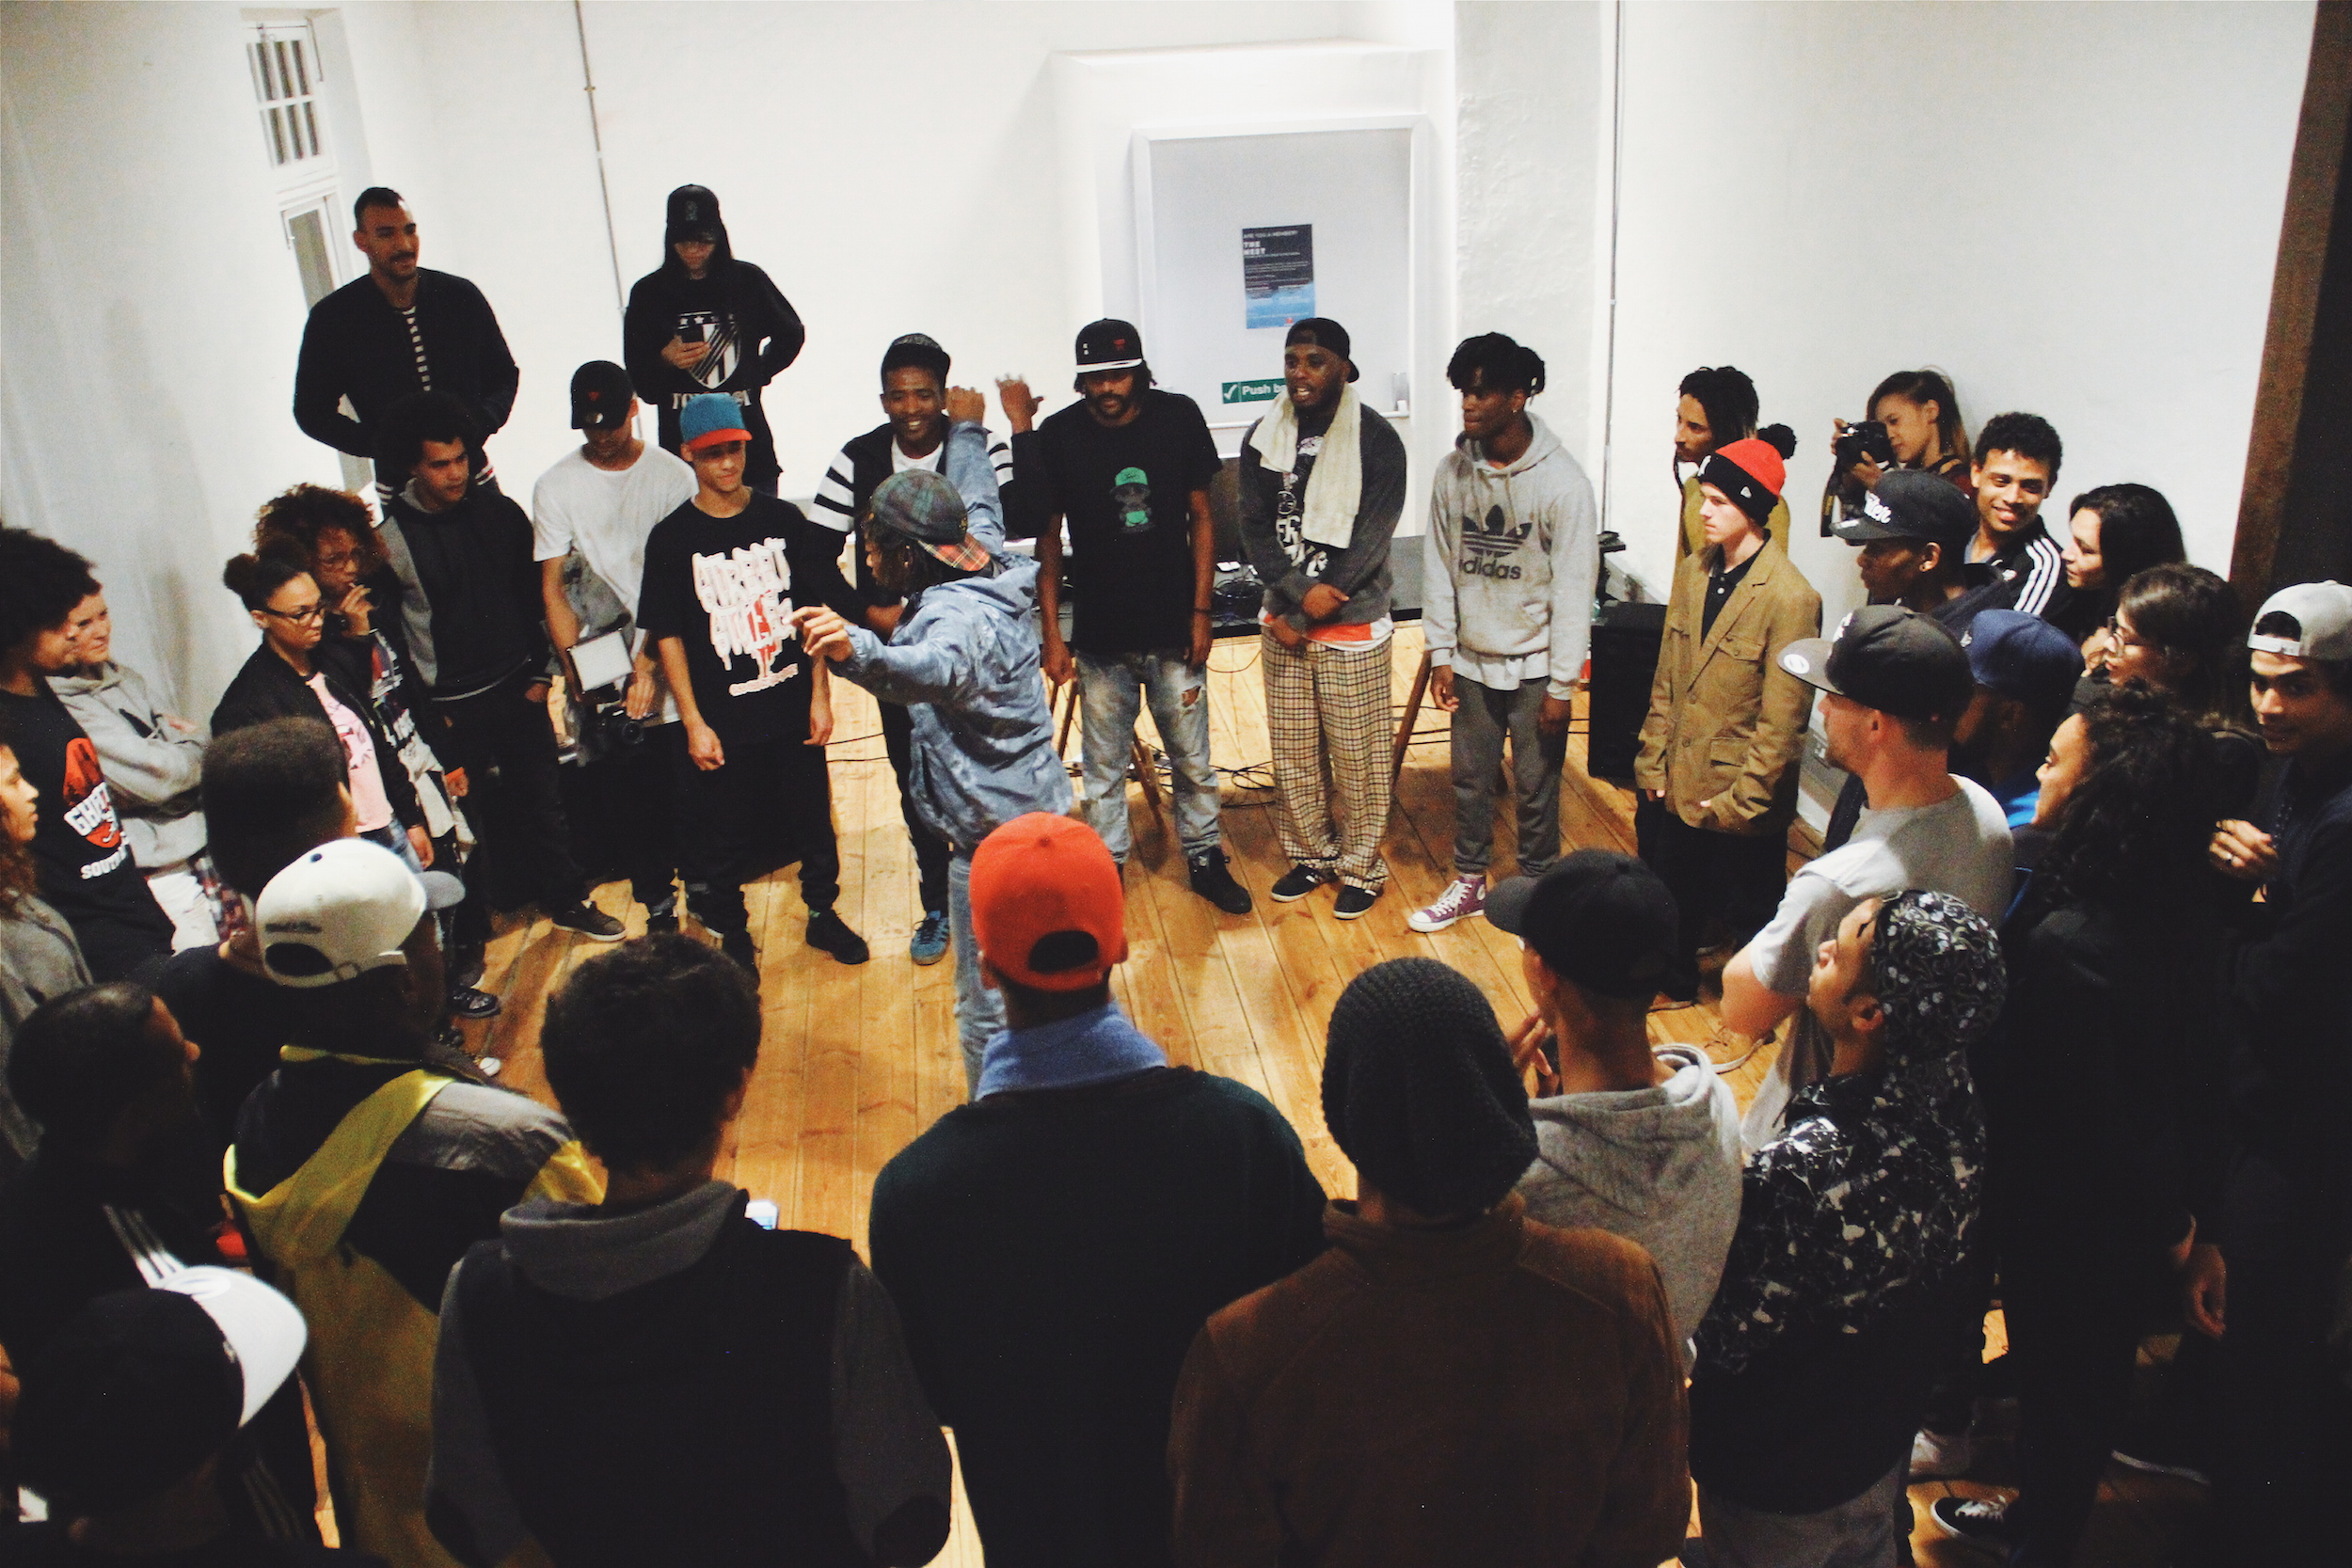 A scene from Creative Nestlings' IROK the Streets - Dance Cypher, Cape Town. Courtesy of Creative Nestlings